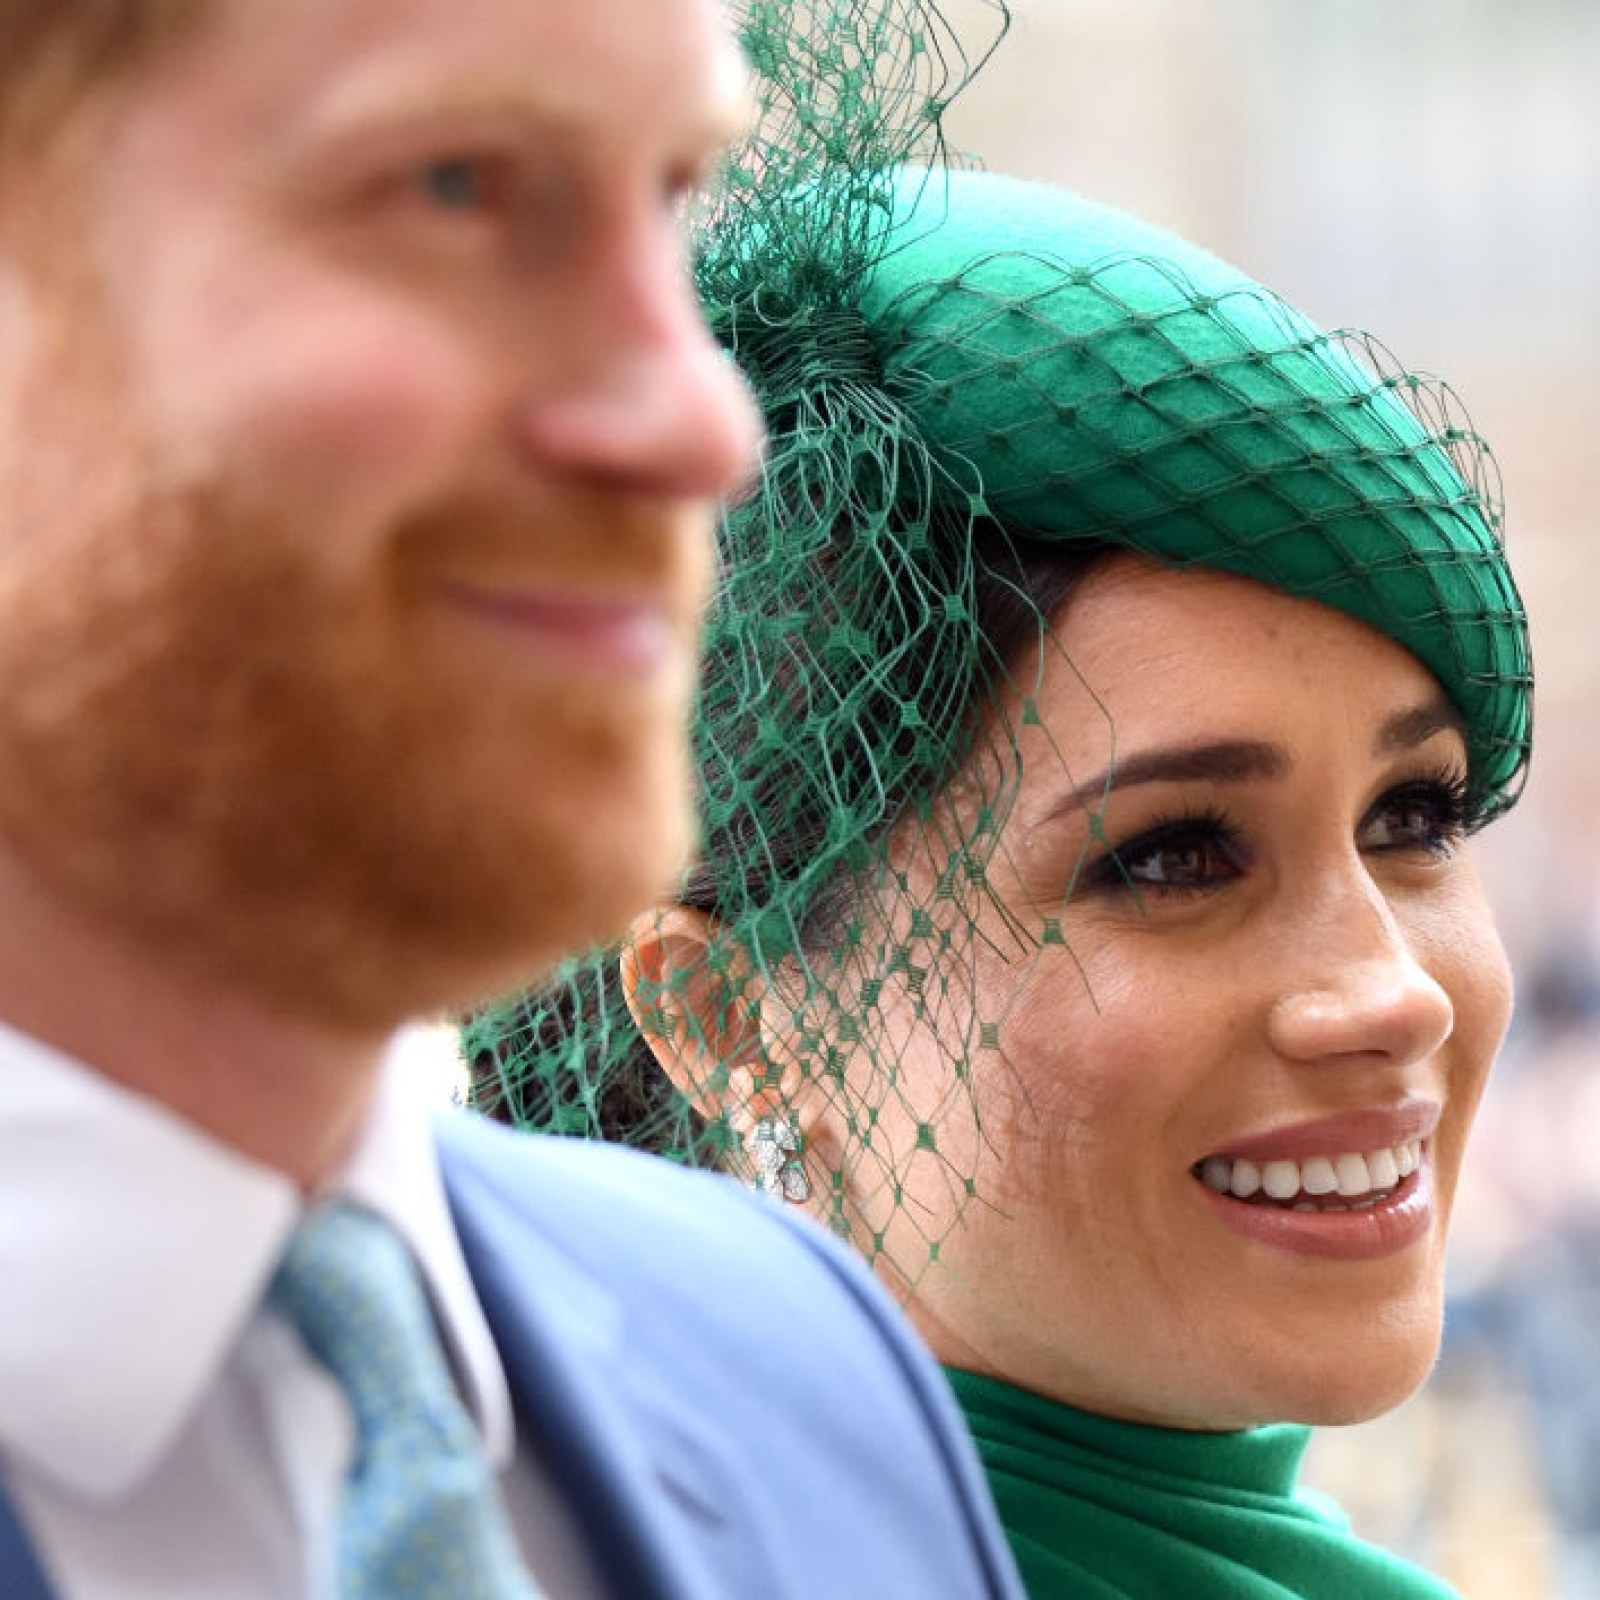 meghan markle and prince harry will rarely return to u k after princess eugenie home deal experts meghan markle and prince harry will